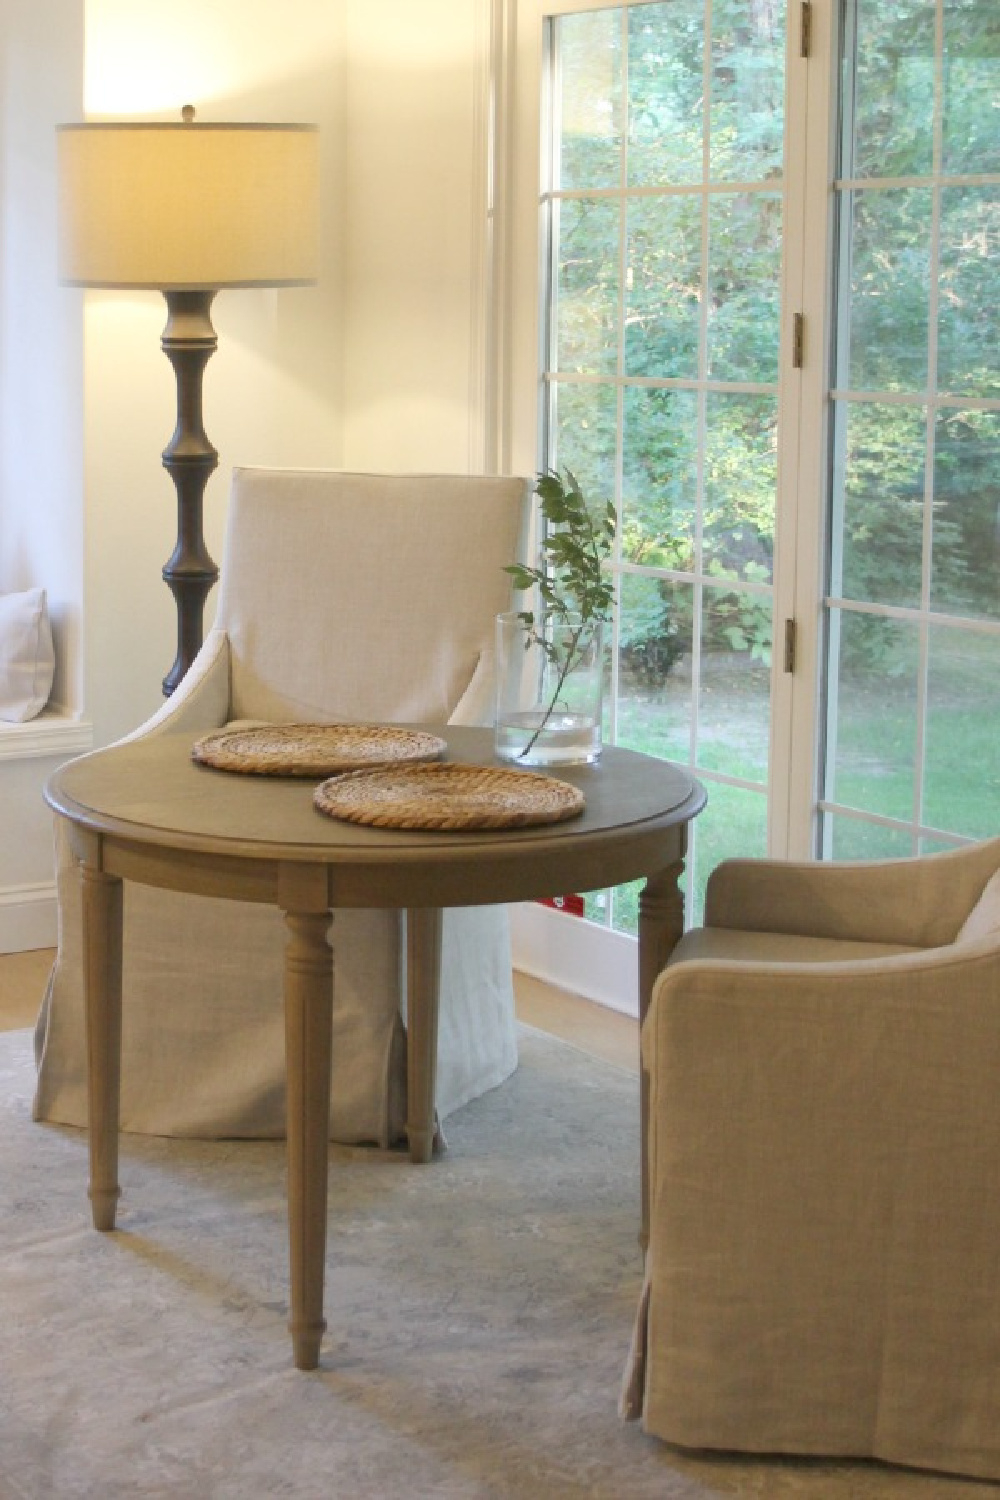 Window seat with linen pillows in European country inspired serene kitchen. Come score ideas for a Timeless and Tranquil European Country Inspired Look. #europeancountry #interiordesign #frenchcountry